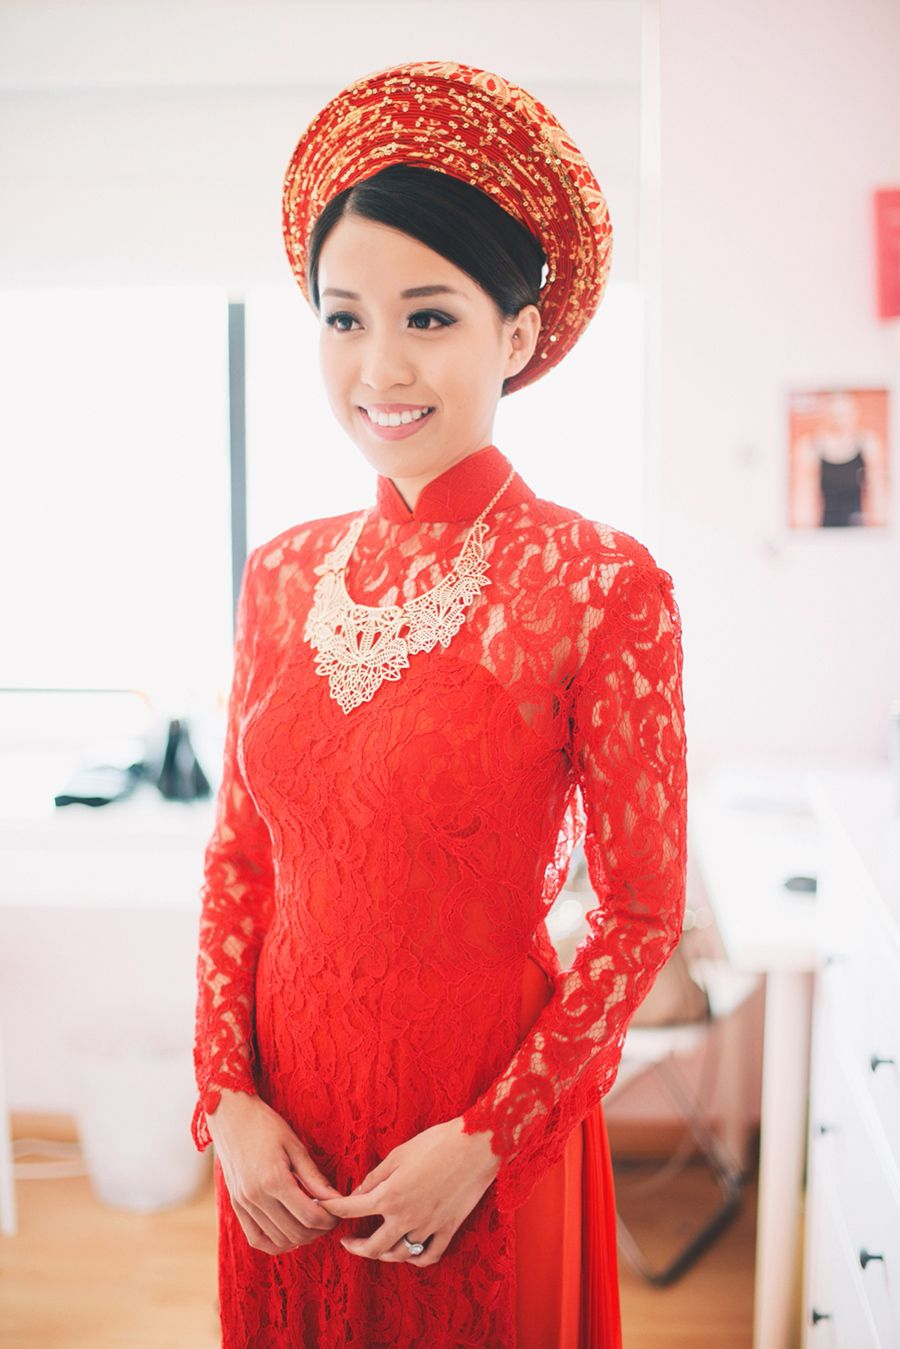 The bride wears a beautiful red Ao Dai Chris and Jenna's